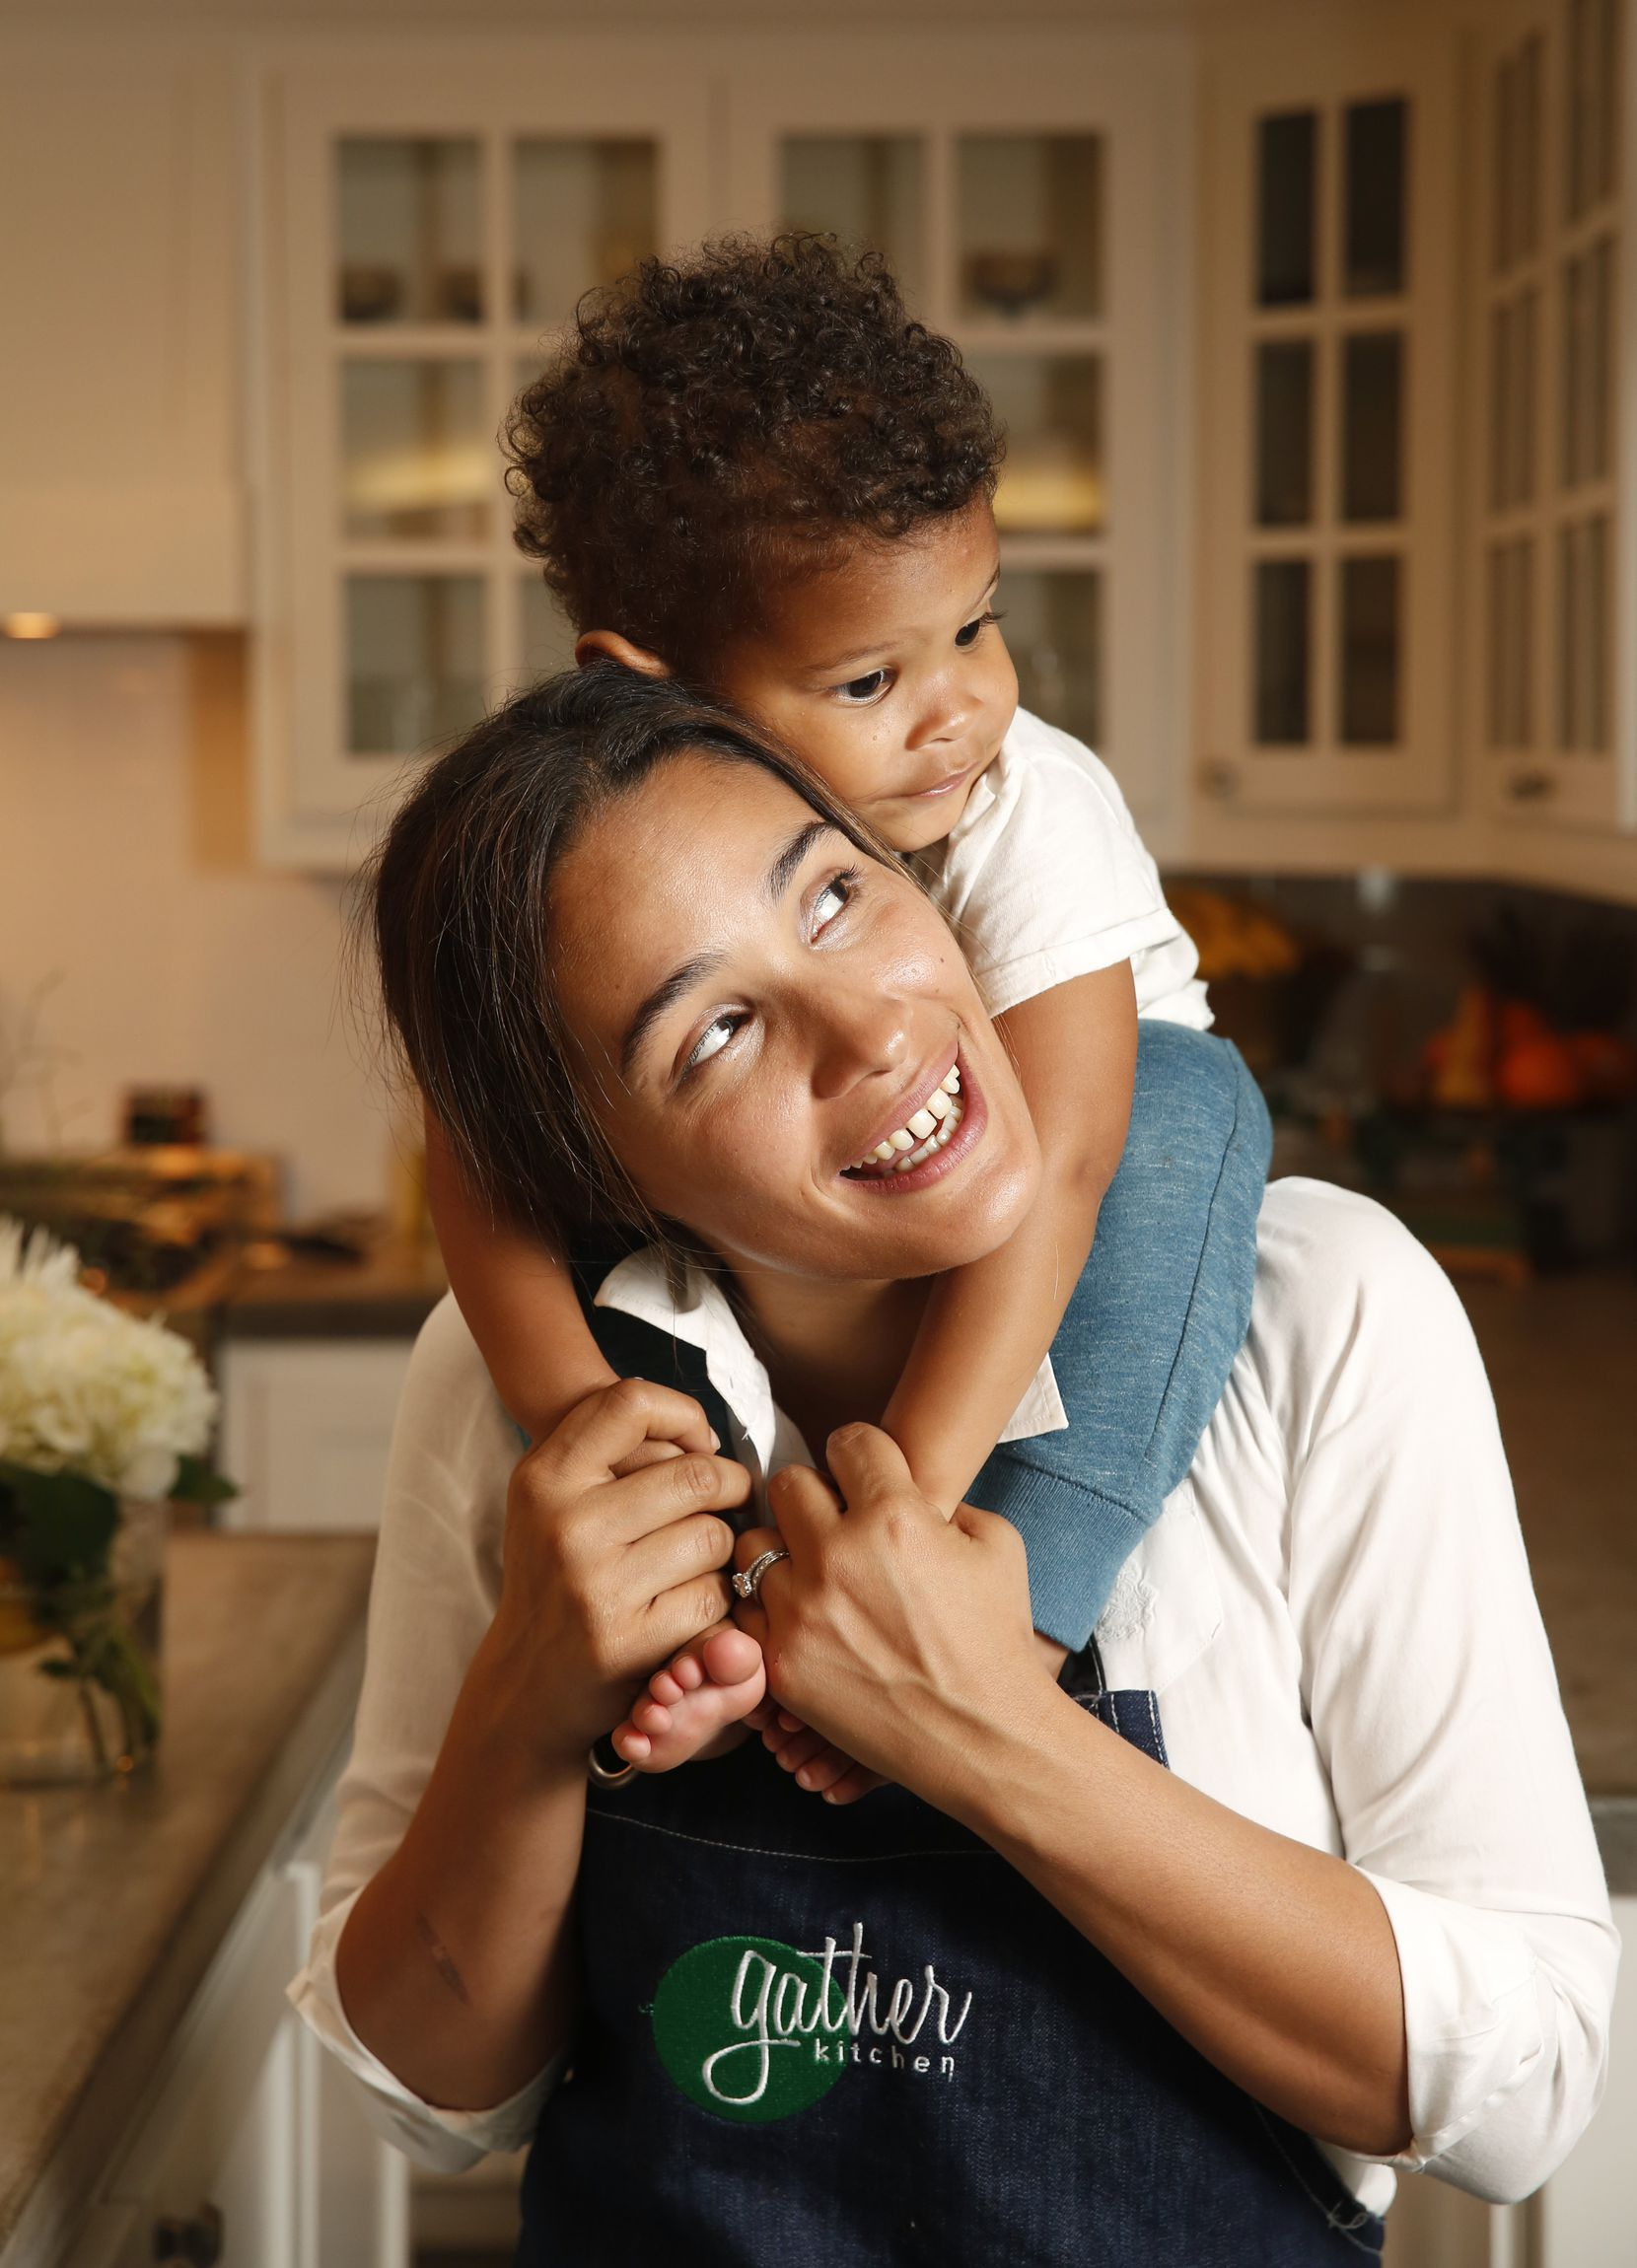 Chef Soraya Spencer, owner of Gather Kitchen, with her son Ethan Zeine at their home in Dallas.